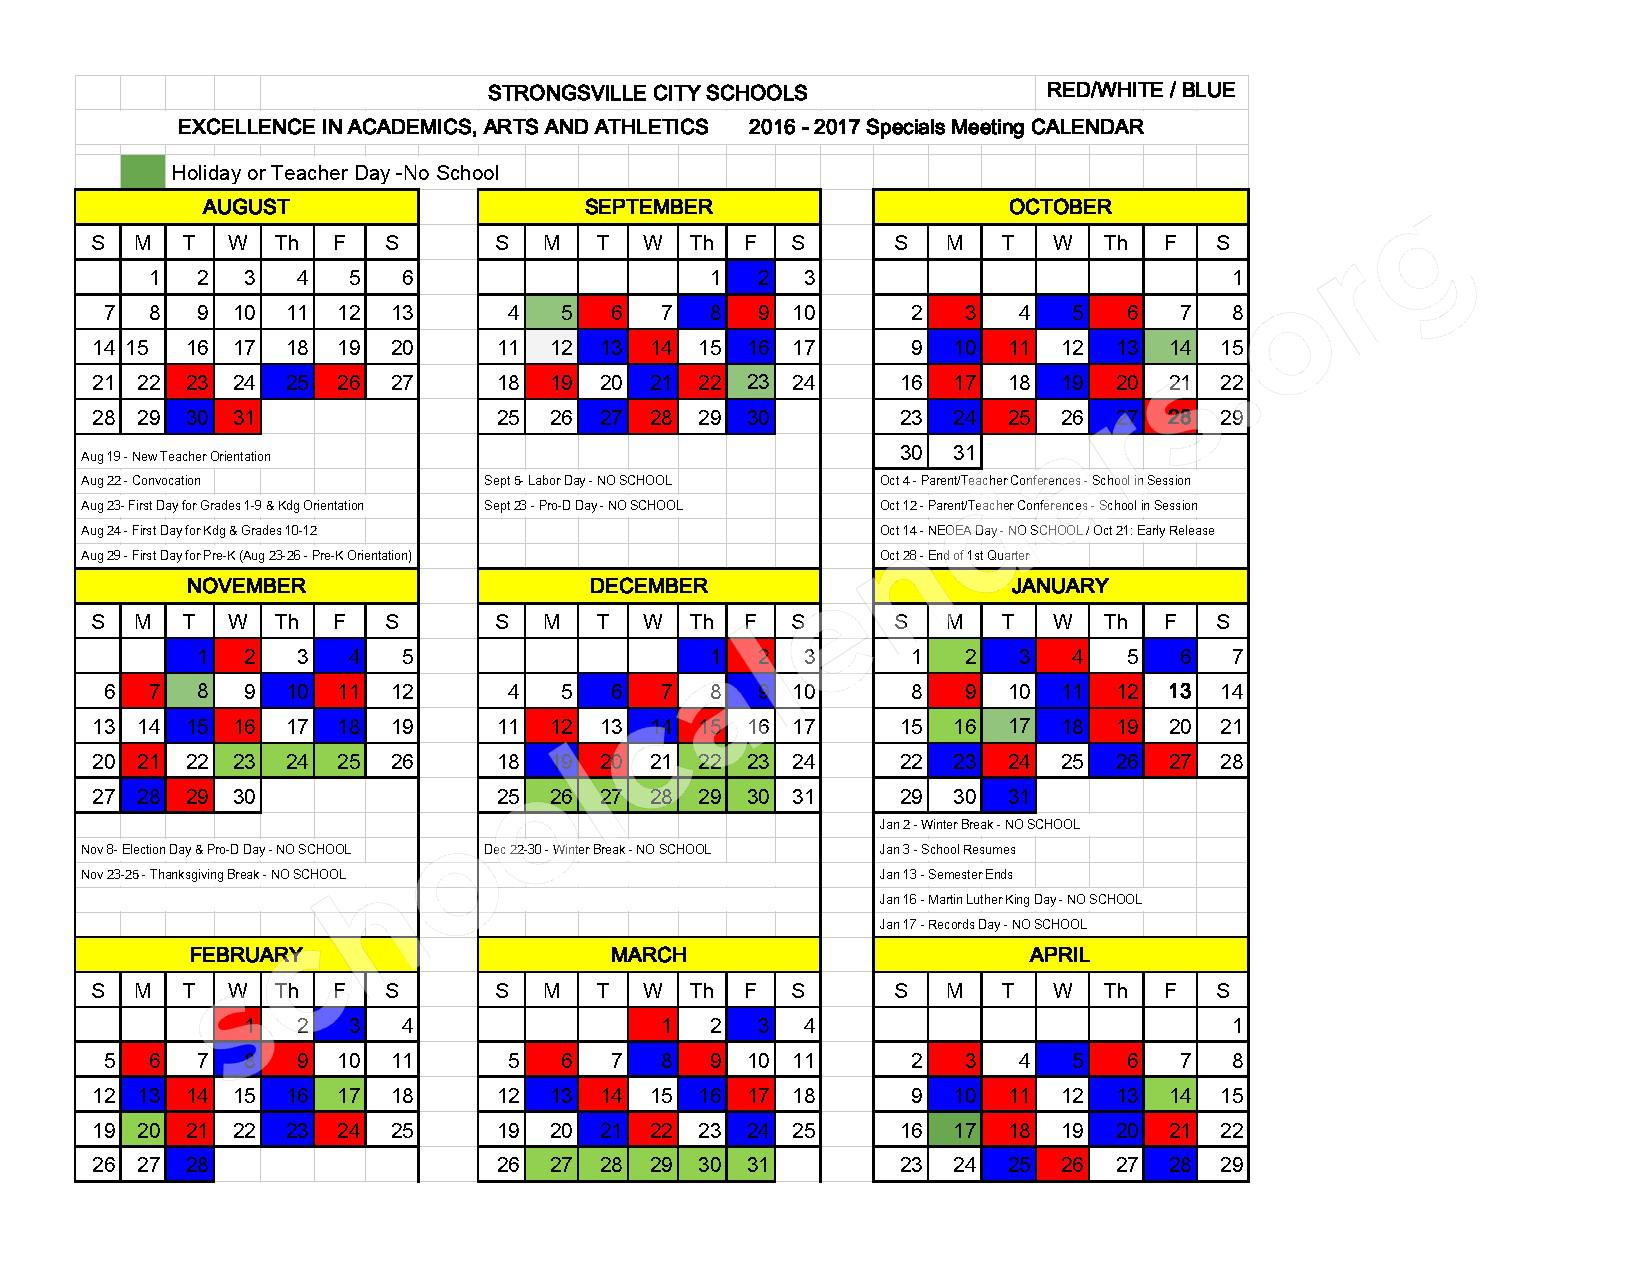 2016 - 2017 Red, White, & Blue Calendar – Strongsville City Schools – page 1